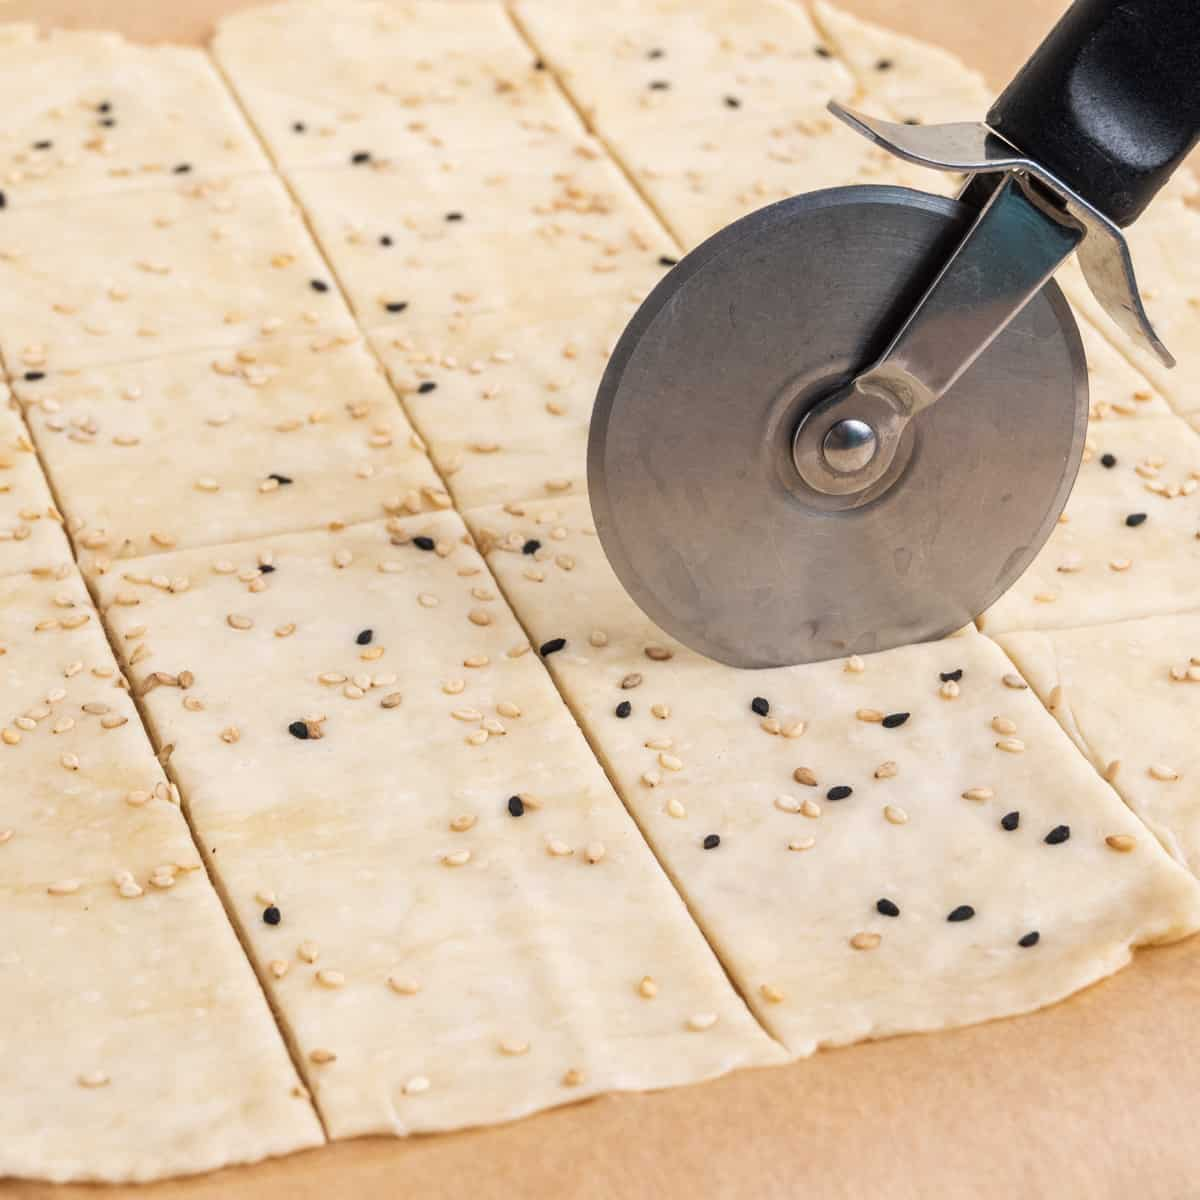 Cutting crackers into squares with a pizza roller.